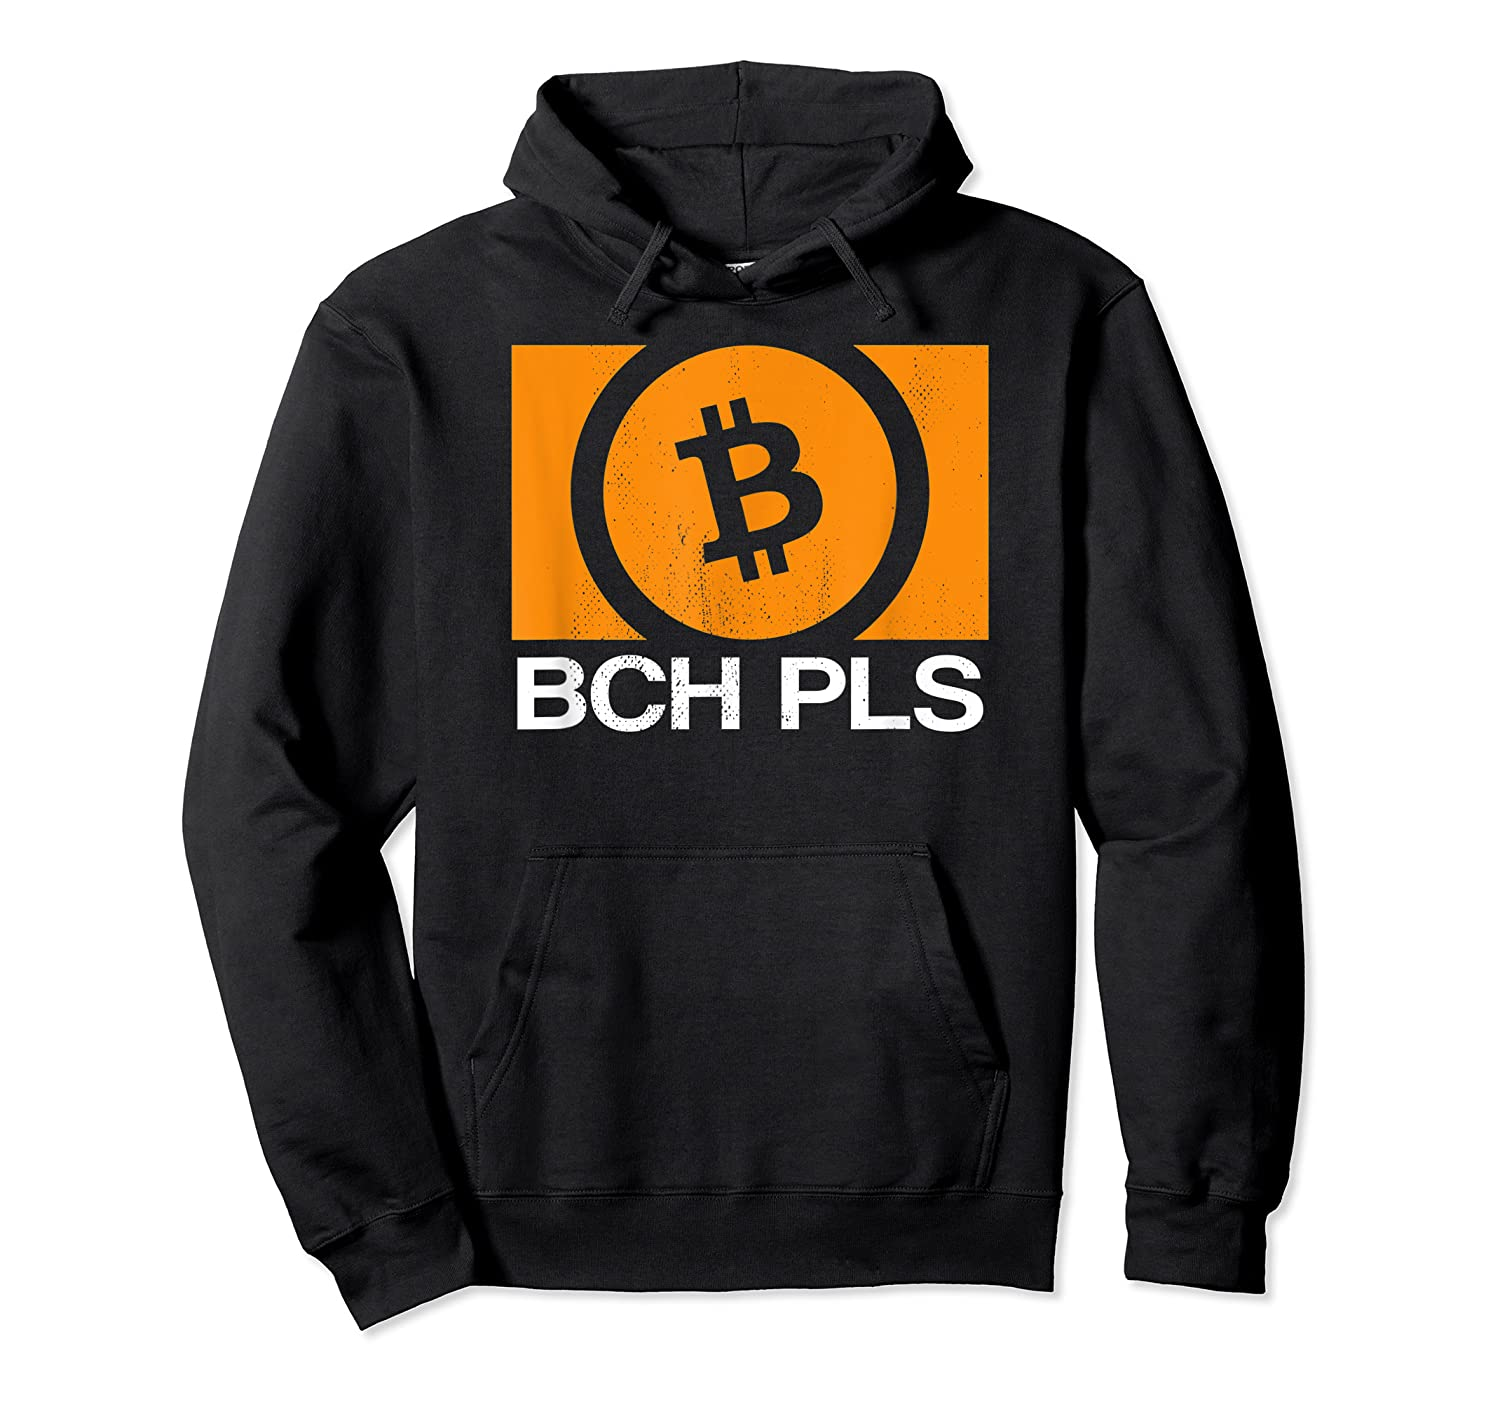 Bch Pls Bitcoin Cash Cryptocurrency Fan Btc Abc Sv Fork T-shirt Unisex Pullover Hoodie